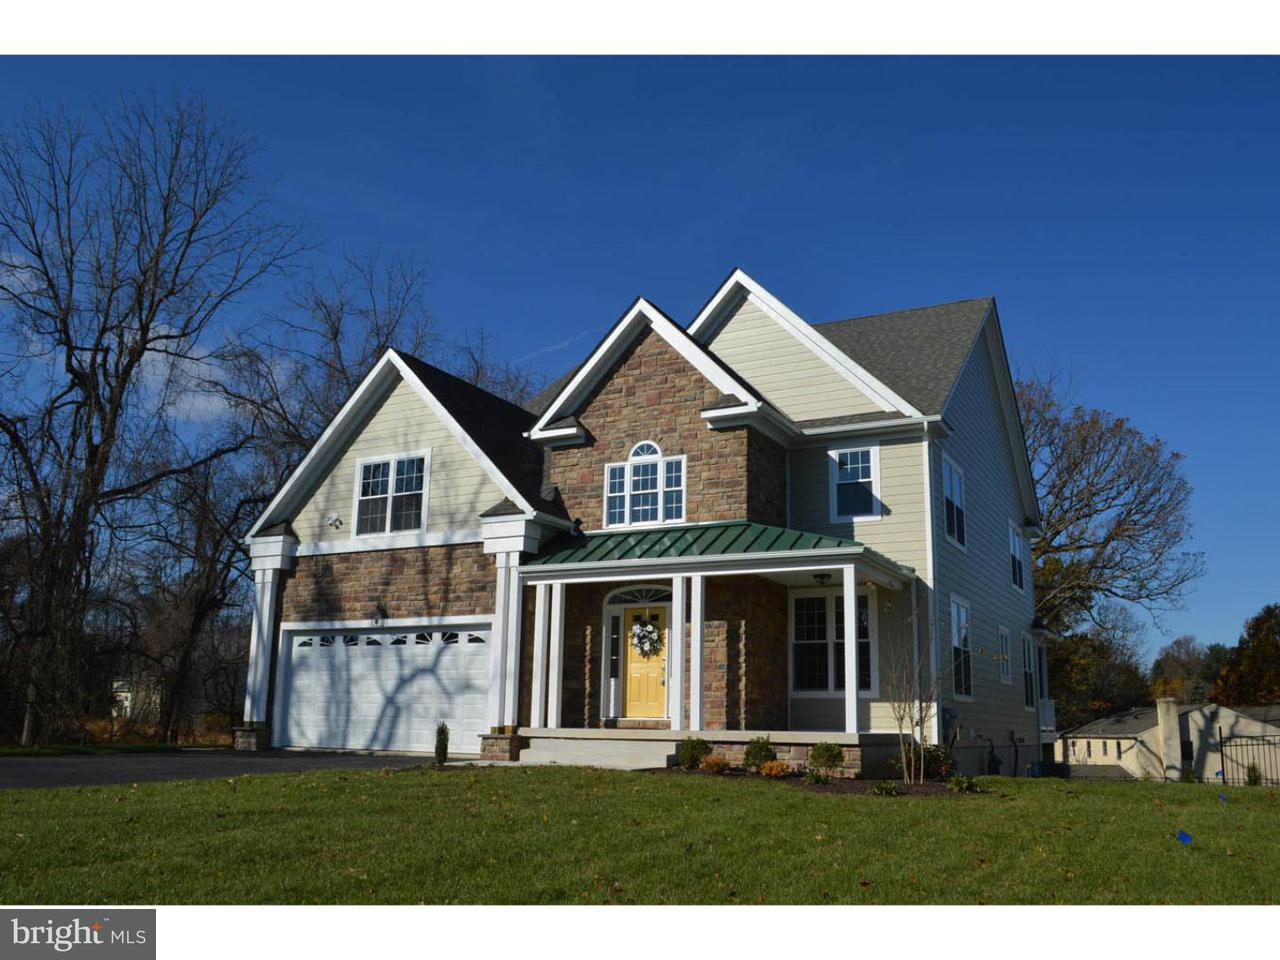 Single Family Home for Sale at 109 FOX HOLLOW Lane Broomall, Pennsylvania 19008 United States